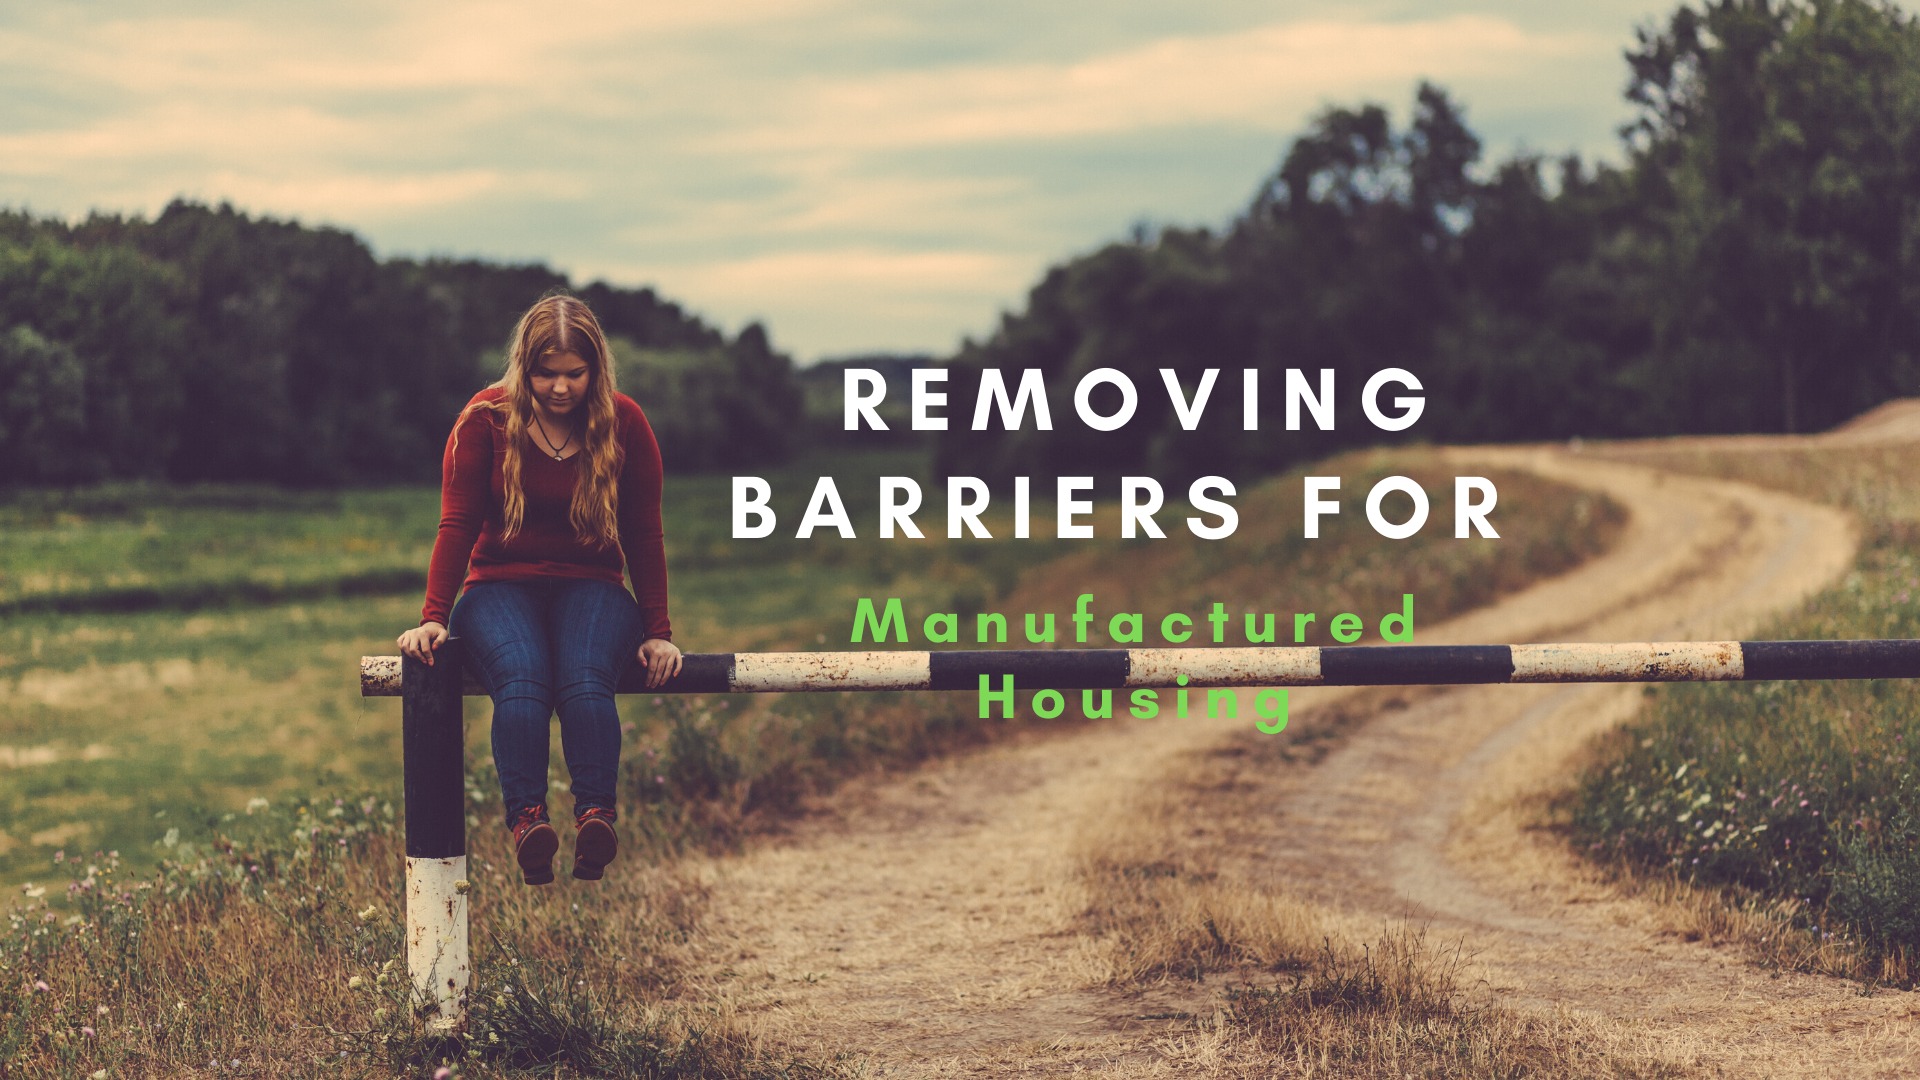 Continuous Advocacy Efforts Are Removing Some of the Barriers to Manufactured Housing